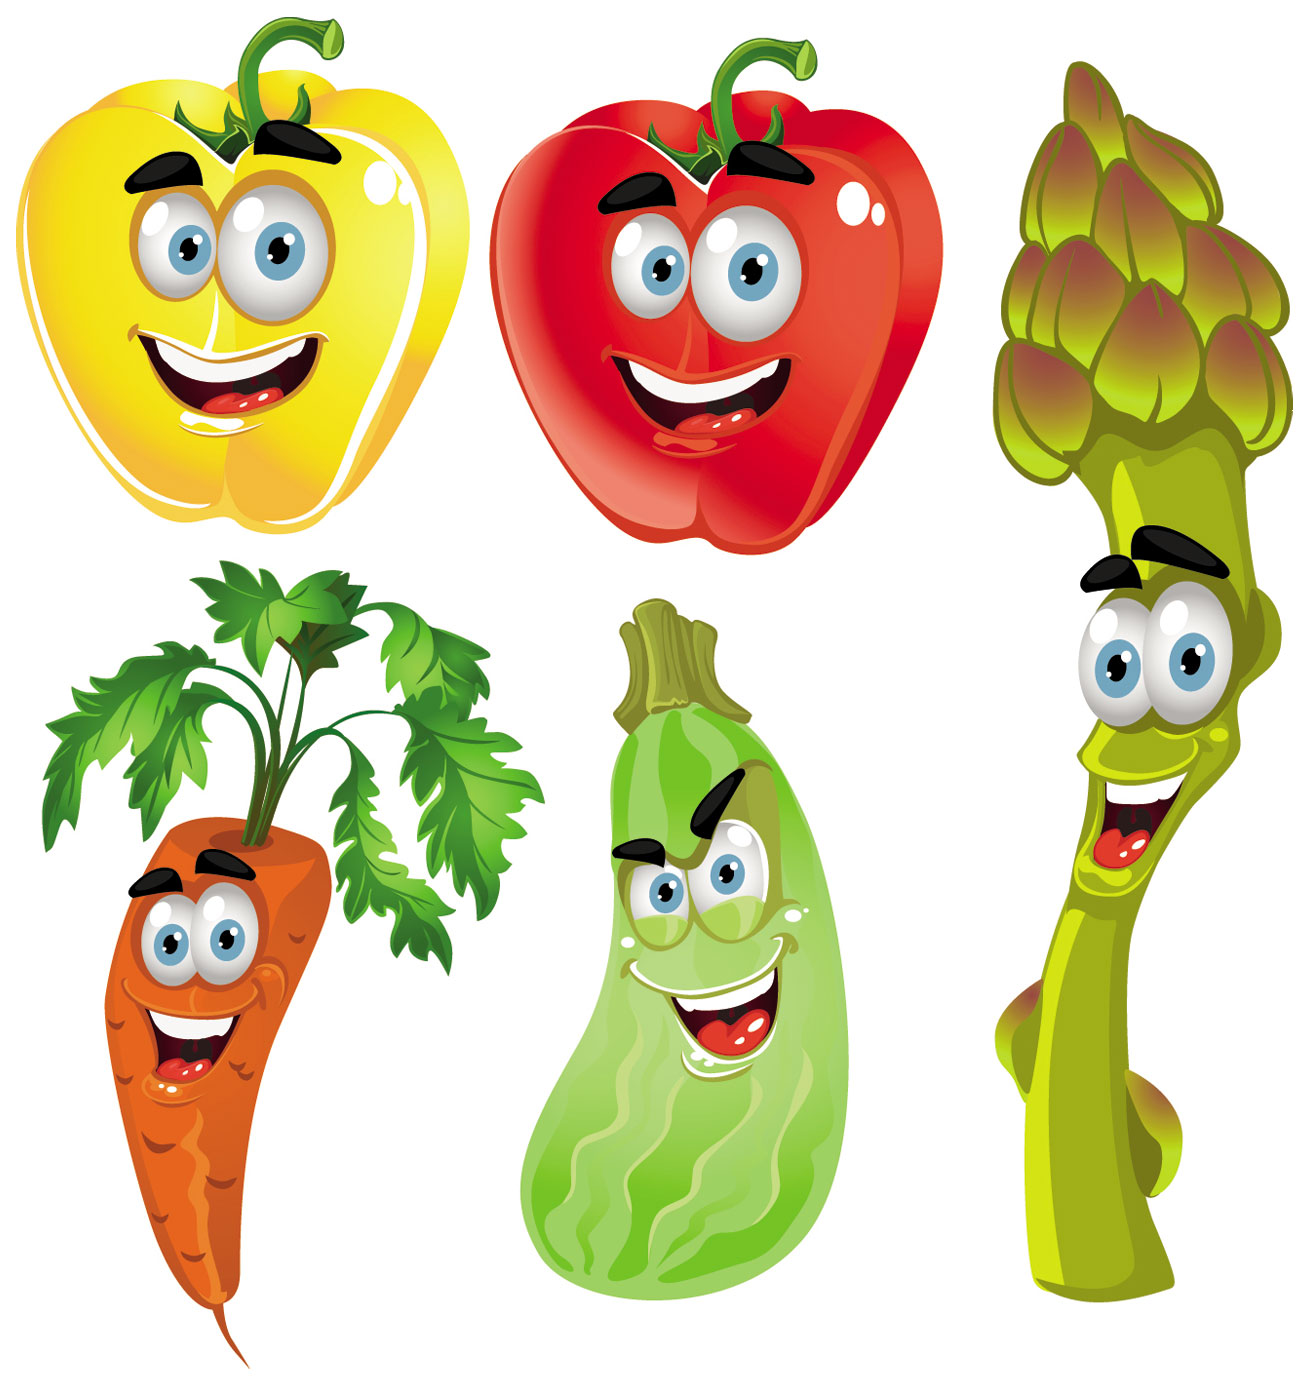 Cartoon Free Fruits Vegetables Tomato Veggies Vegetable Arts Drawings